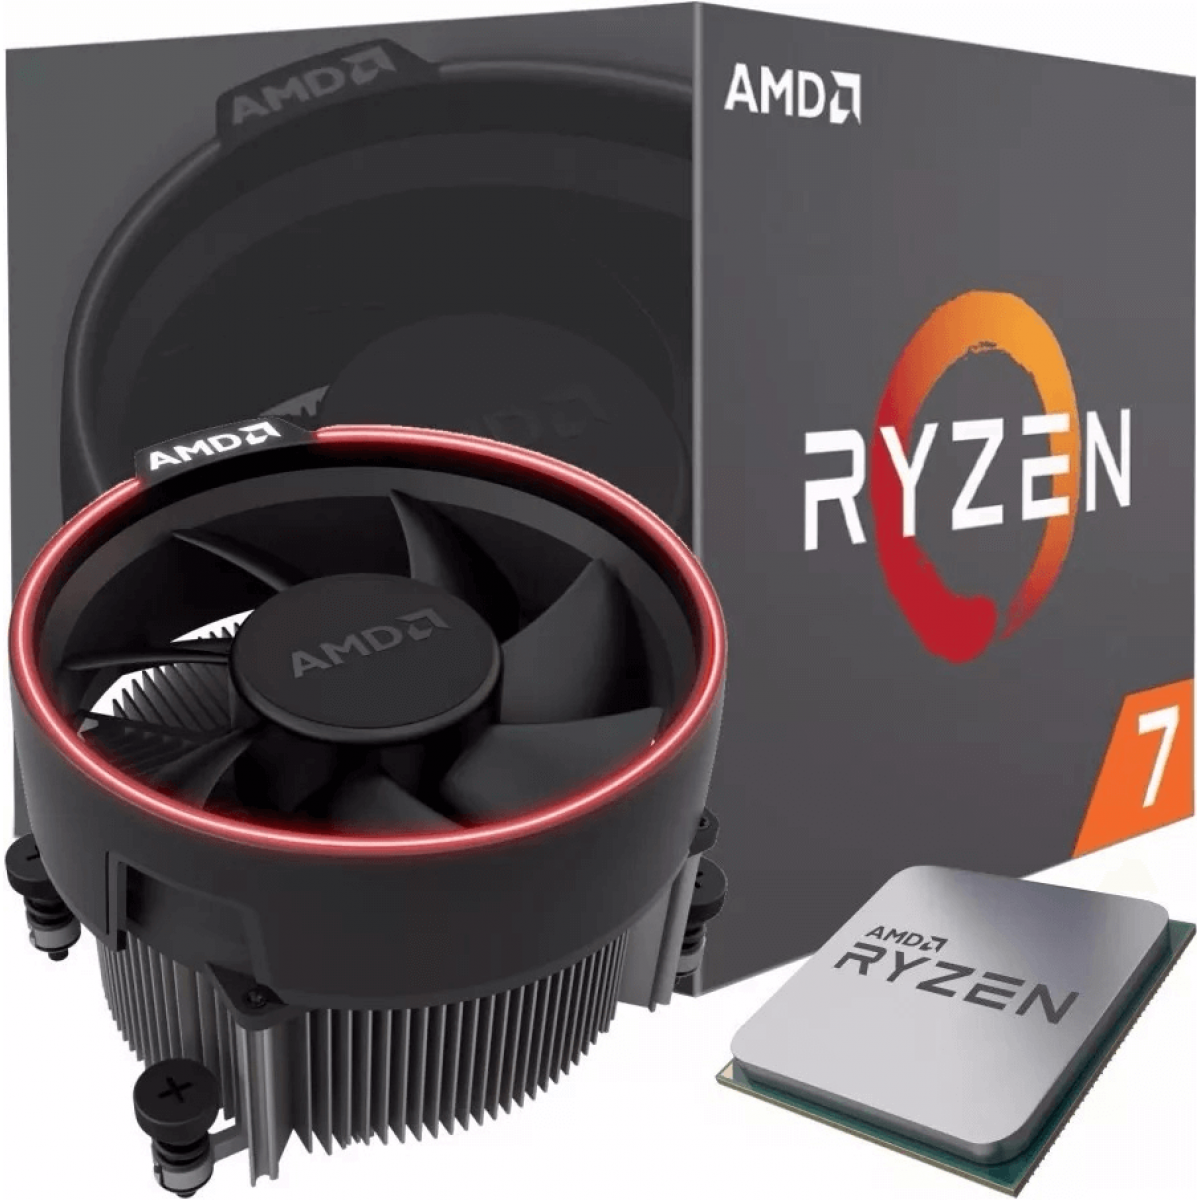 Processador AMD Ryzen 7 1700 3.0GHz (3.7GHz Turbo), 8-Cores 16-Threads, Cooler Wraith Spire com Led, AM4 YD1700BBAEBOX, S/ Video